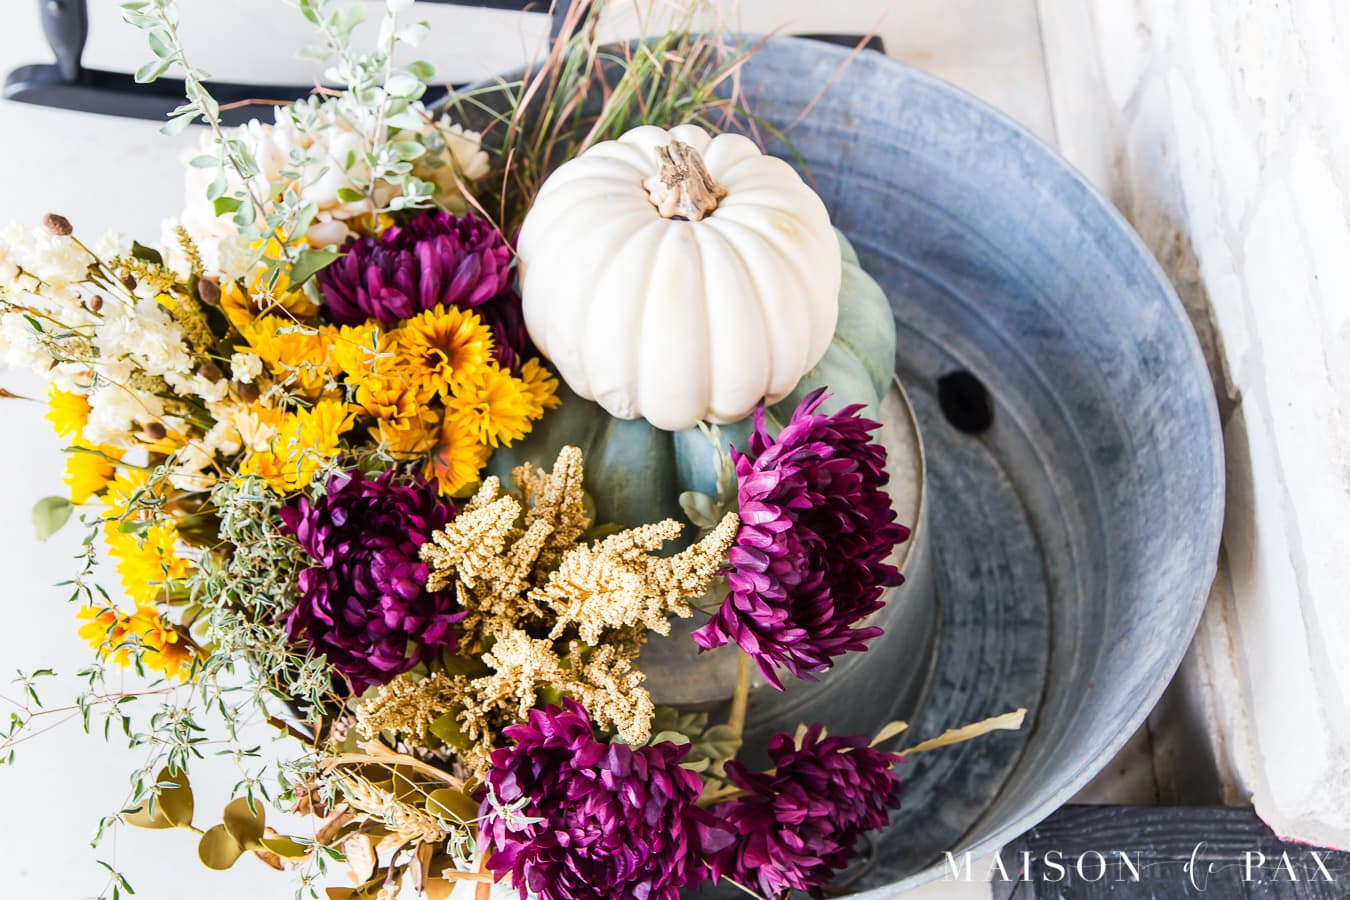 galvanized tub filled with autumn florals and pumpkins | Maison de Pax